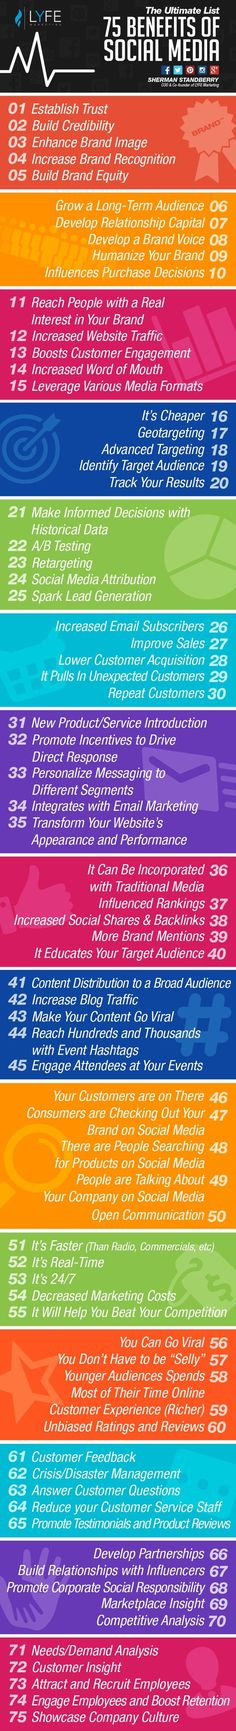 75 Huge Benefits of Social Media Are You Taking Advantage of Them